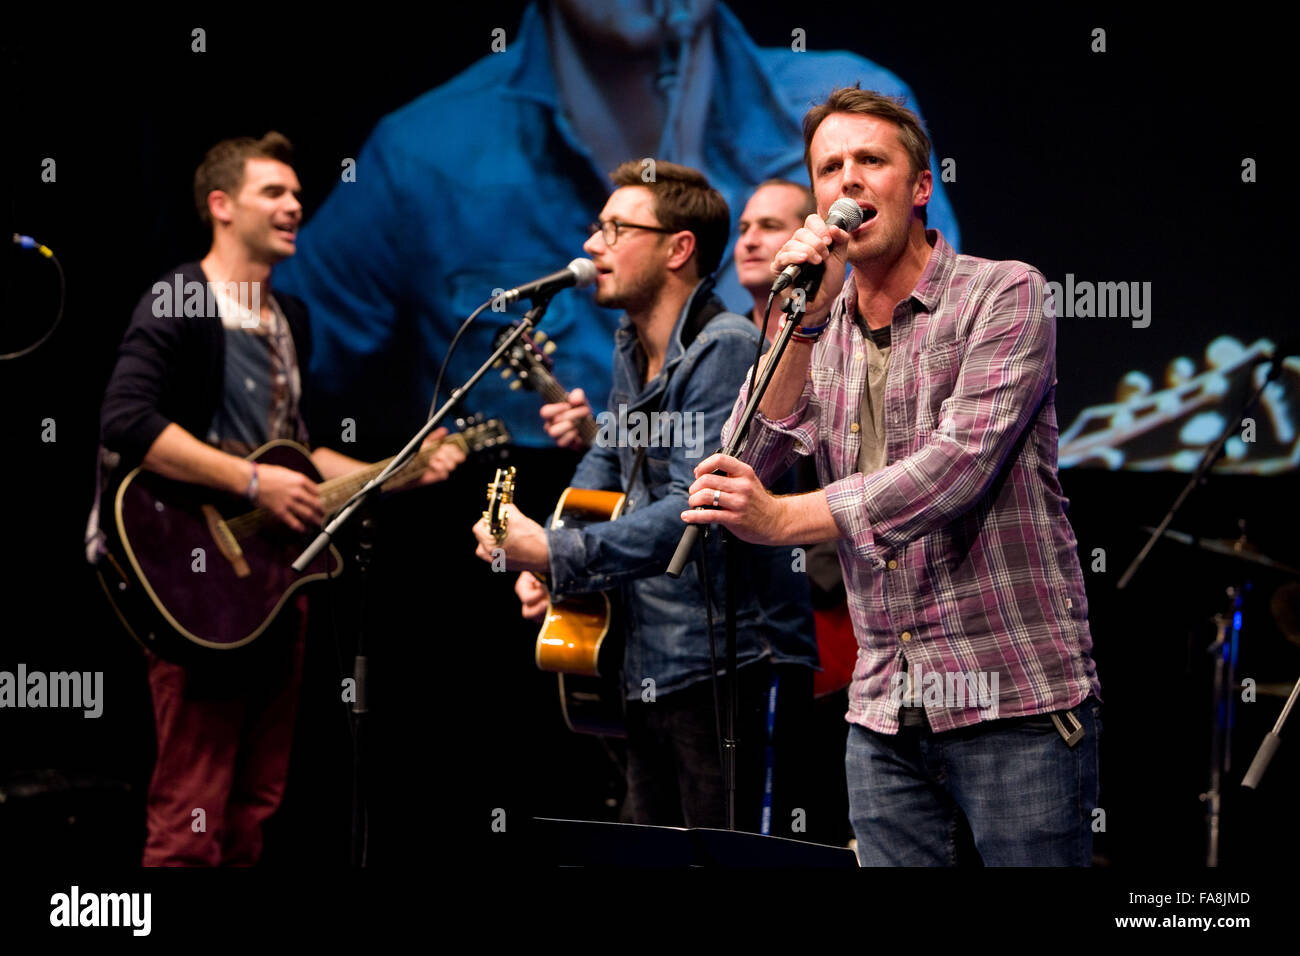 BBC Radio 5 Live Octoberfest in Sheffield Thursday James Anderson and Graeme Swann on stage - Stock Image